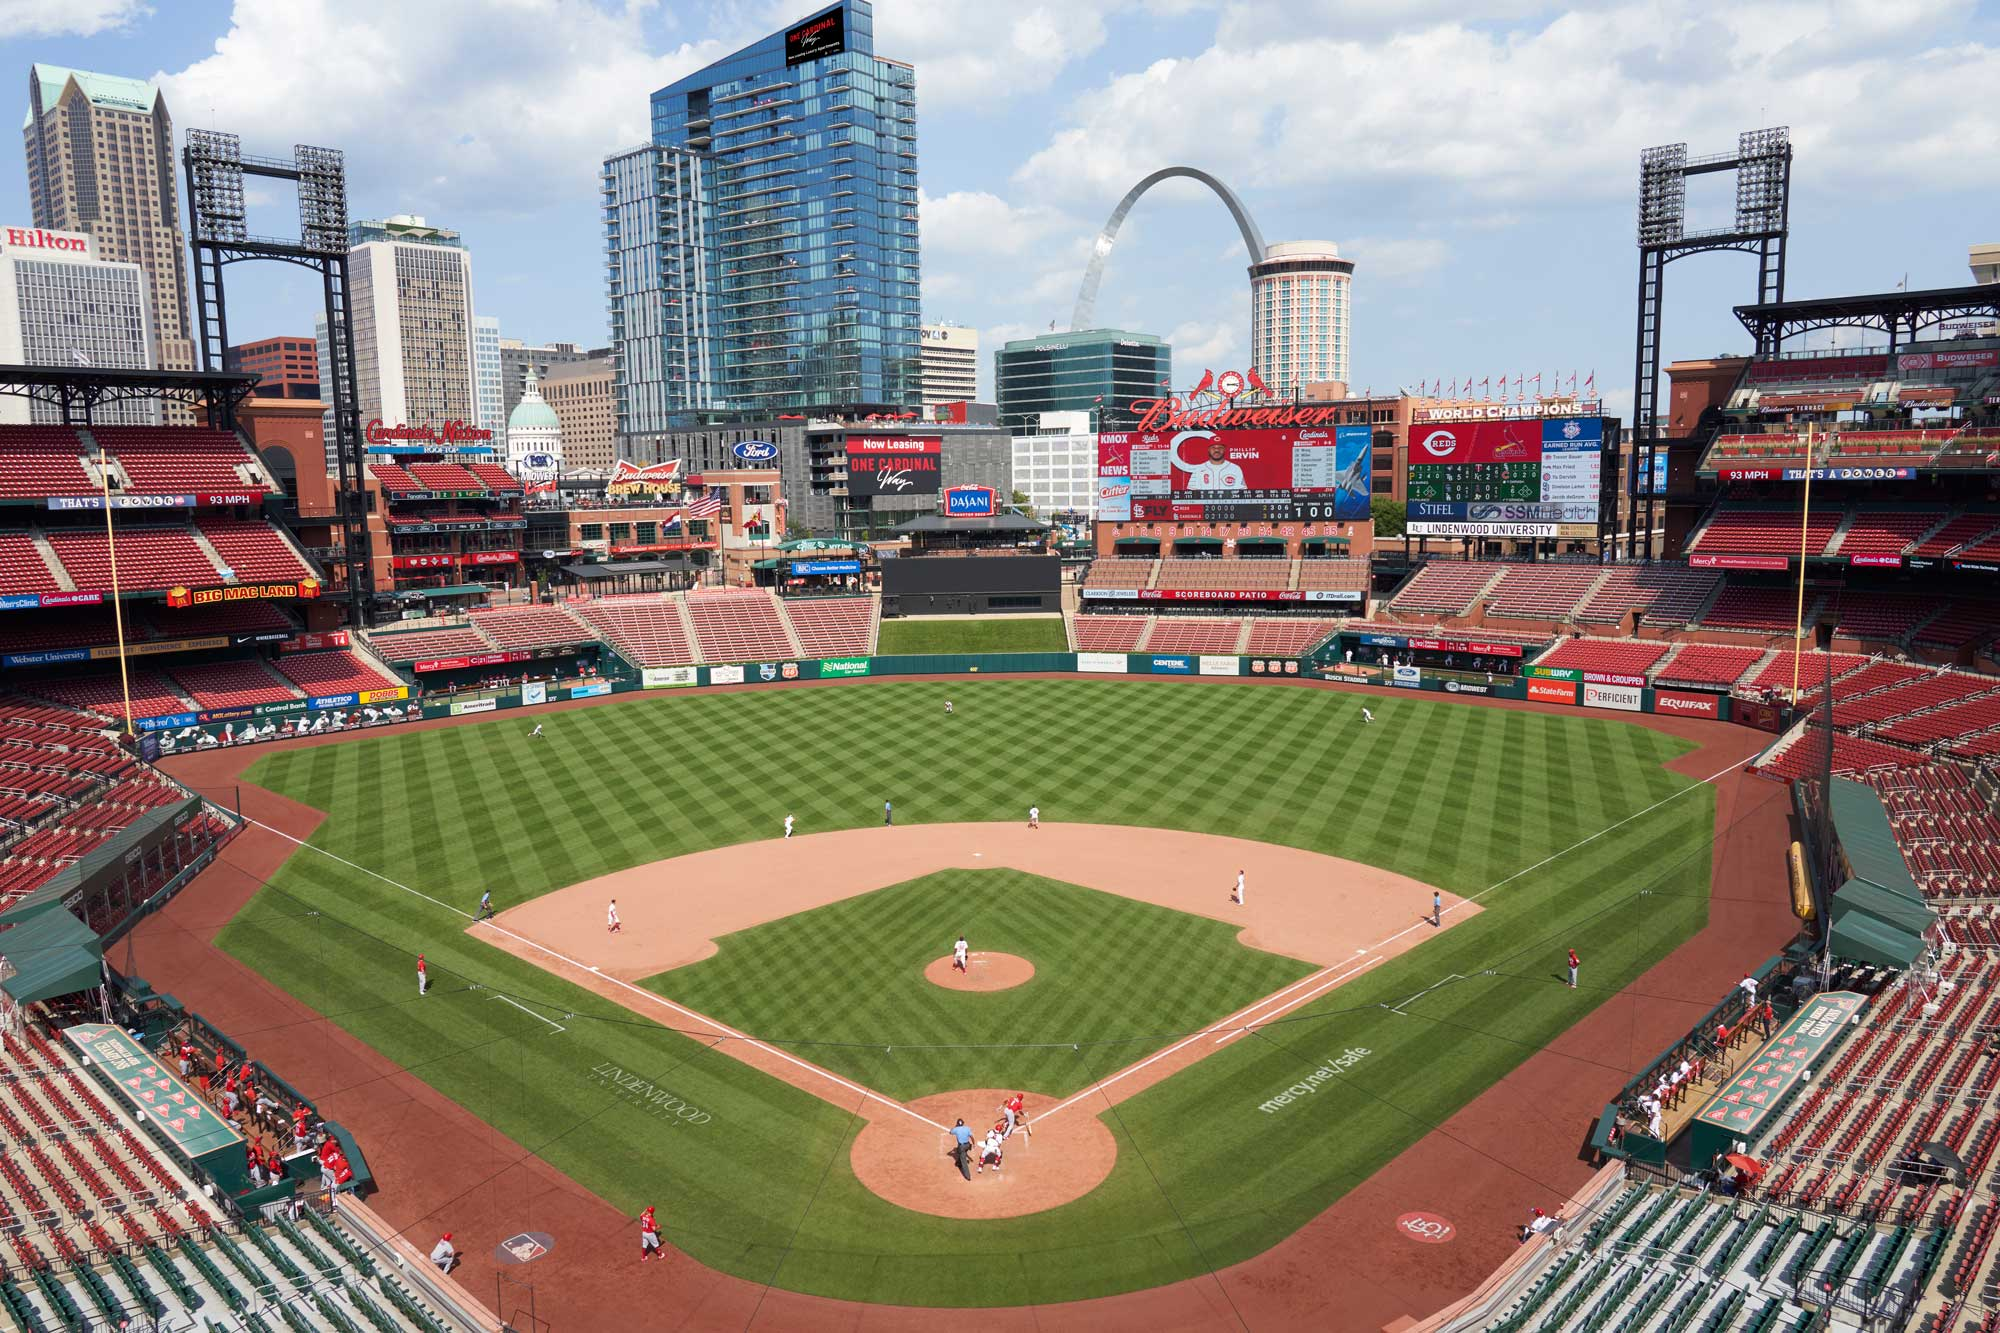 Photo of direct view into Busch Stadium from One Cardinal Way Luxury Apartments in St. Louis